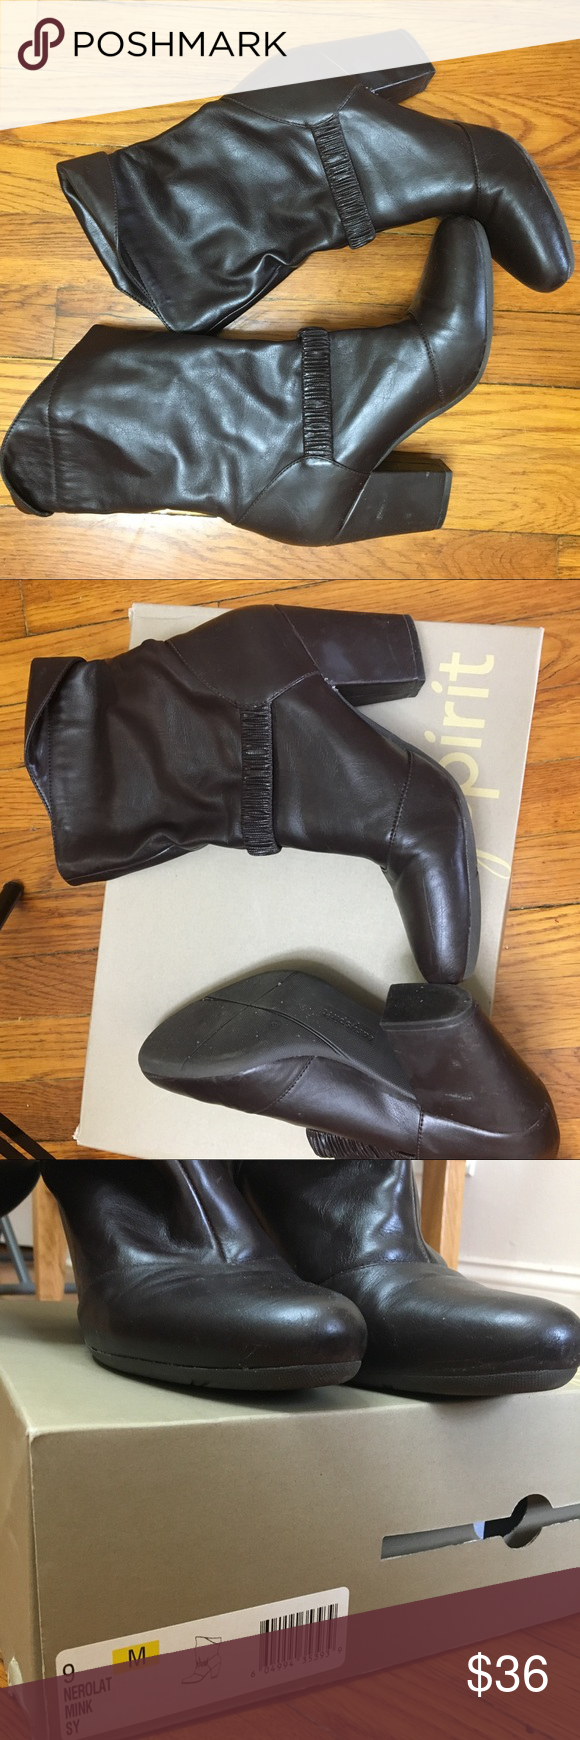 Easy spirit brown boots Worn 56 times. Pet free and smoke